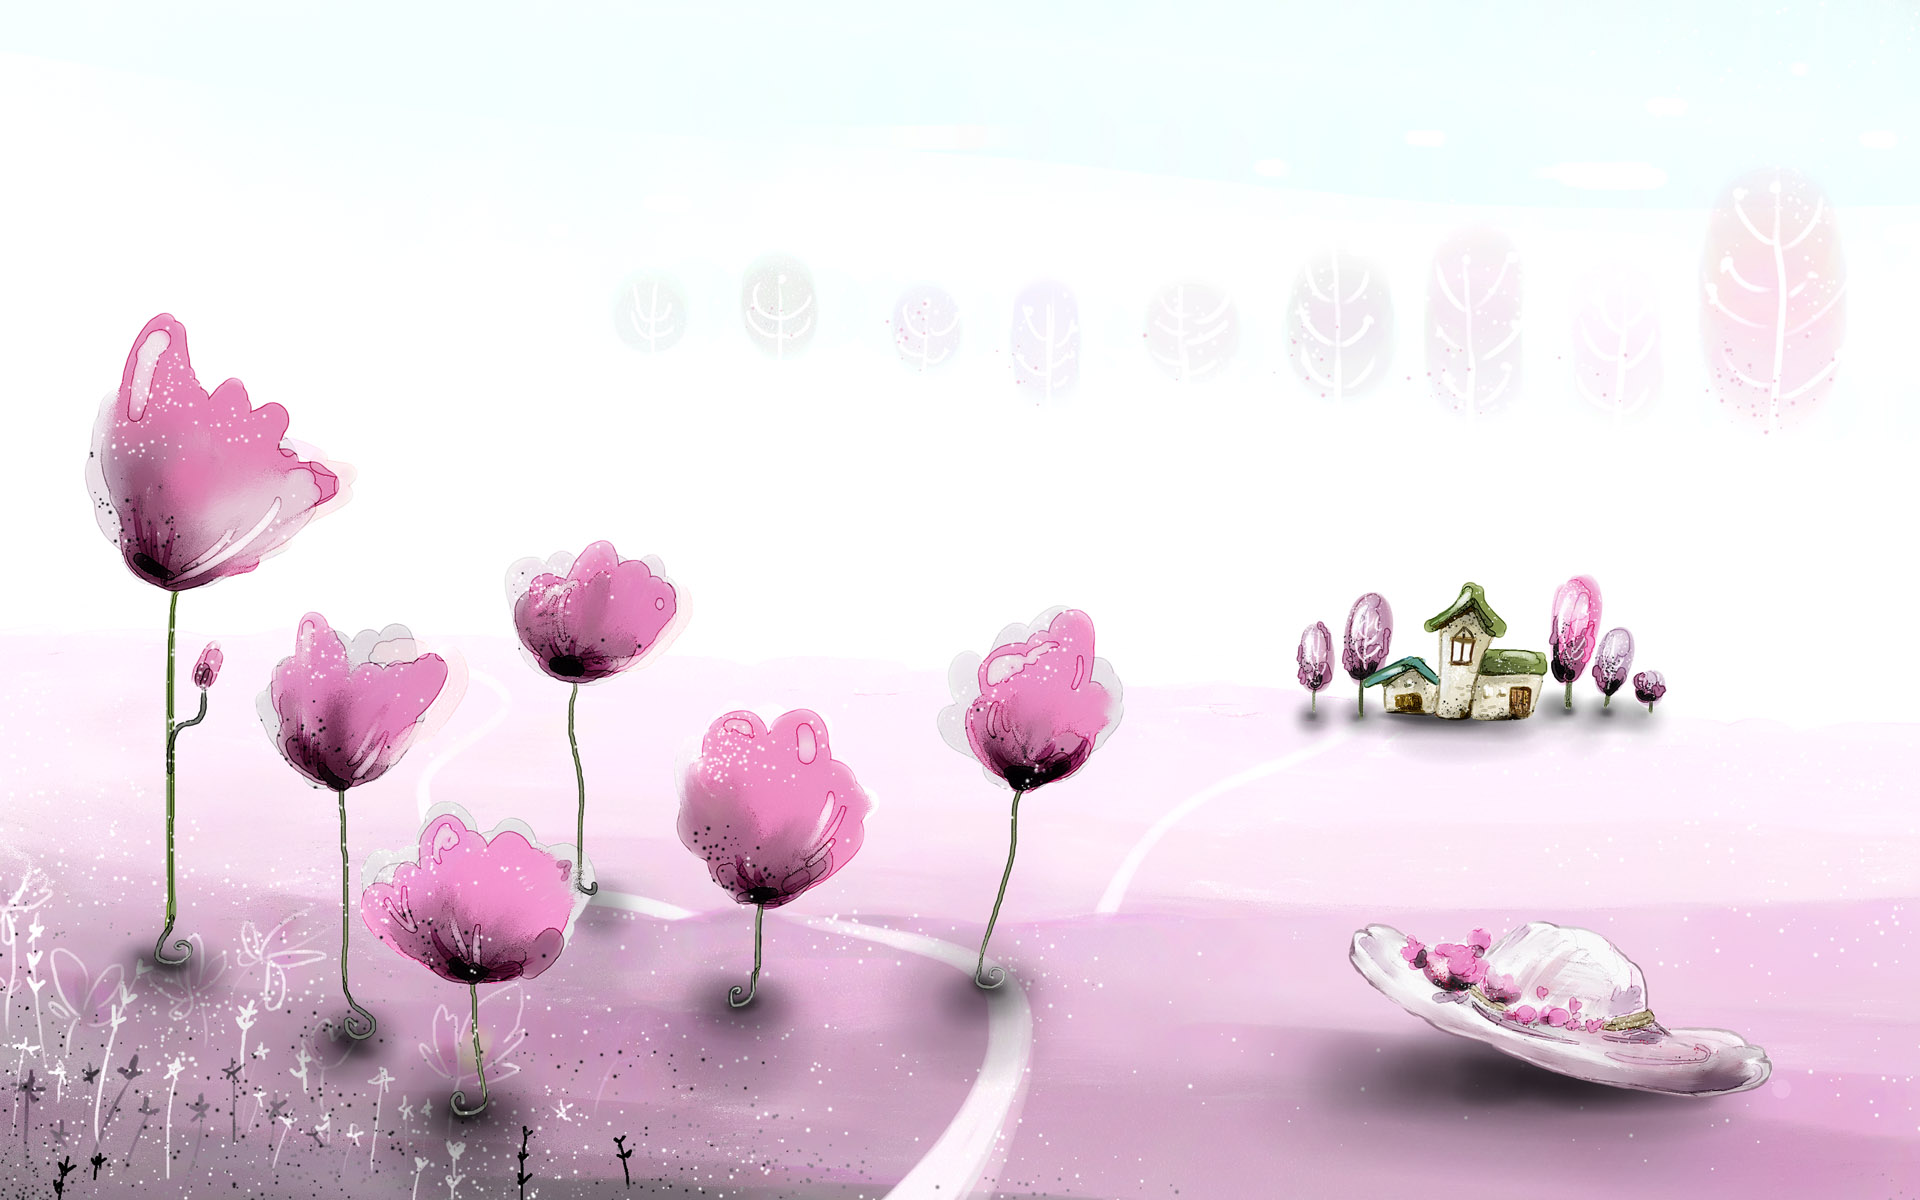 Cute Wallpapers: Cute Computer Wallpapers For Teens